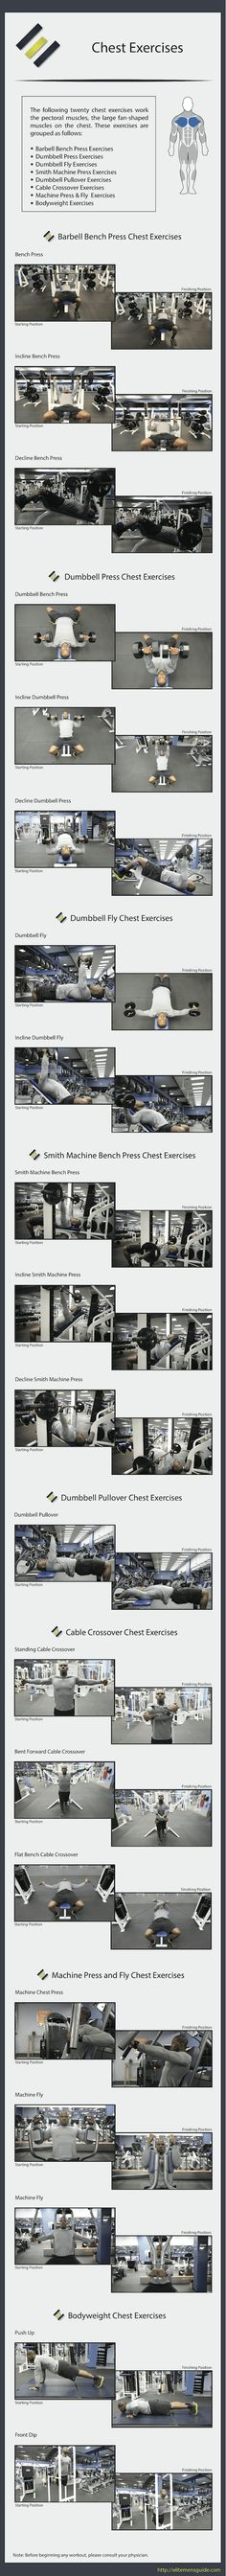 EMG's Chest Exercises Infographic provides twenty fundamental chest exercises with starting and finishing positions. #ChestExercises #ChestWorkouts